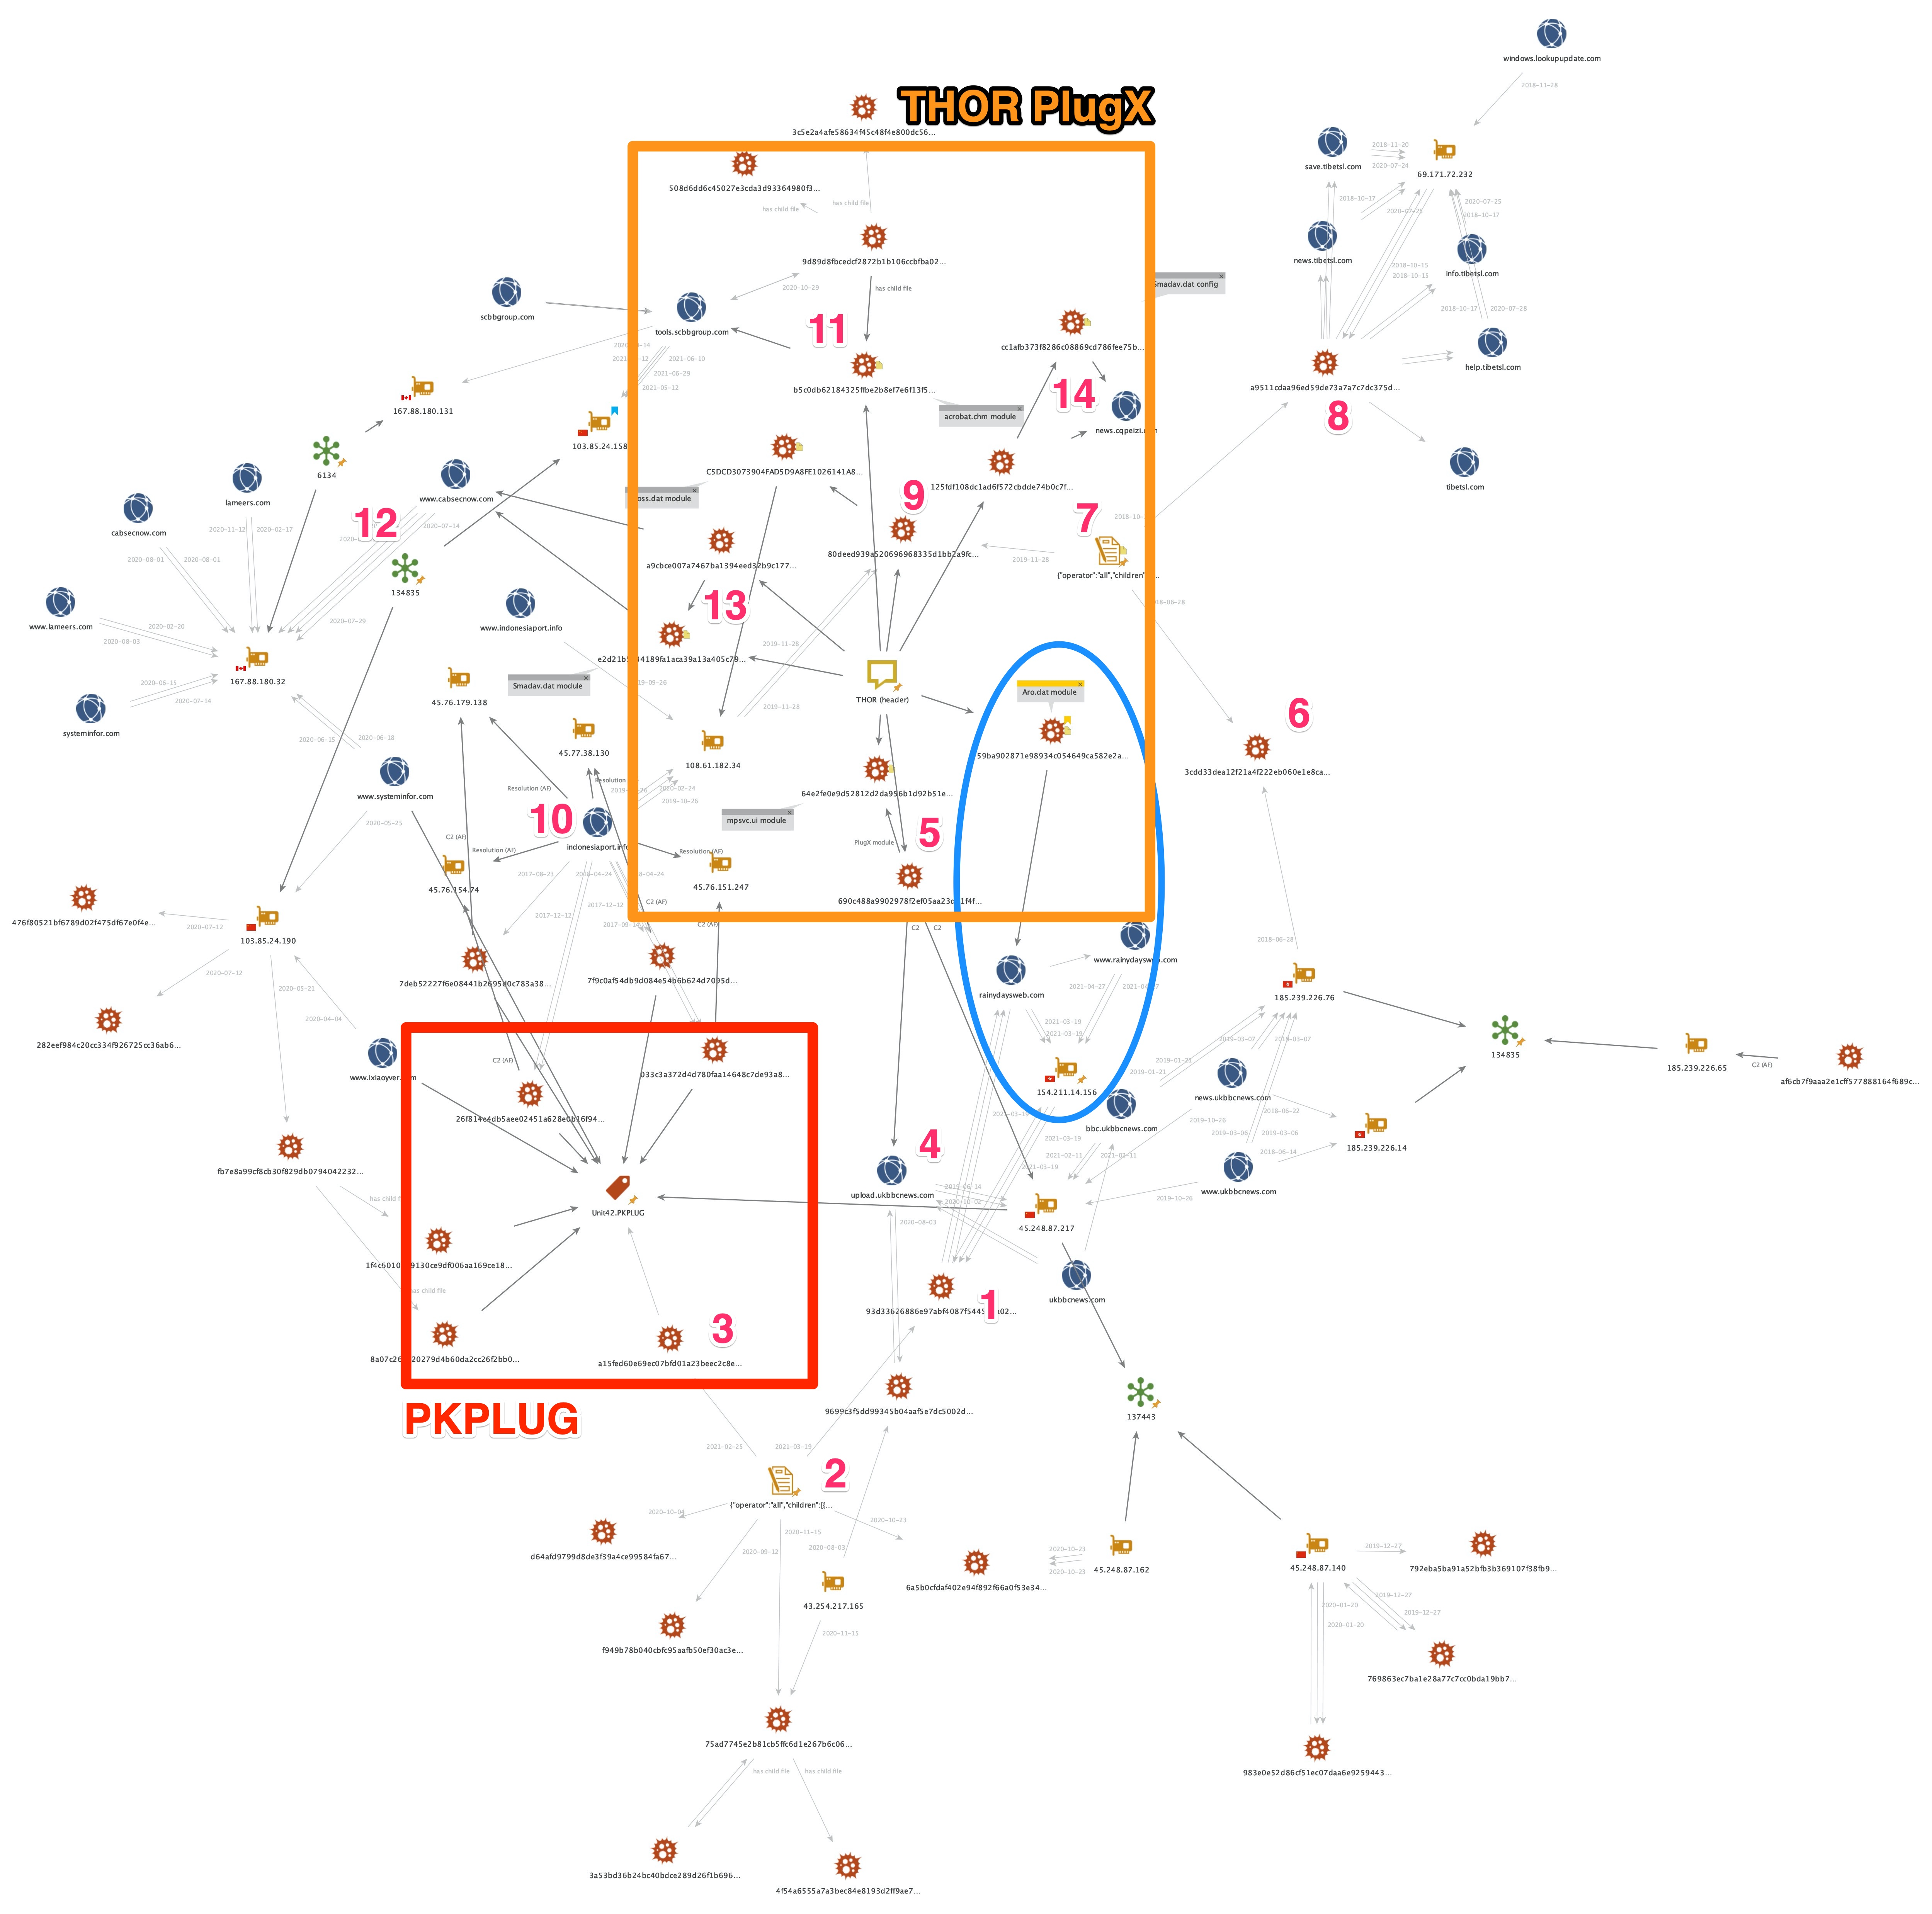 Mapping connections to show how THOR overlaps with existing PKPLUG infrastructure